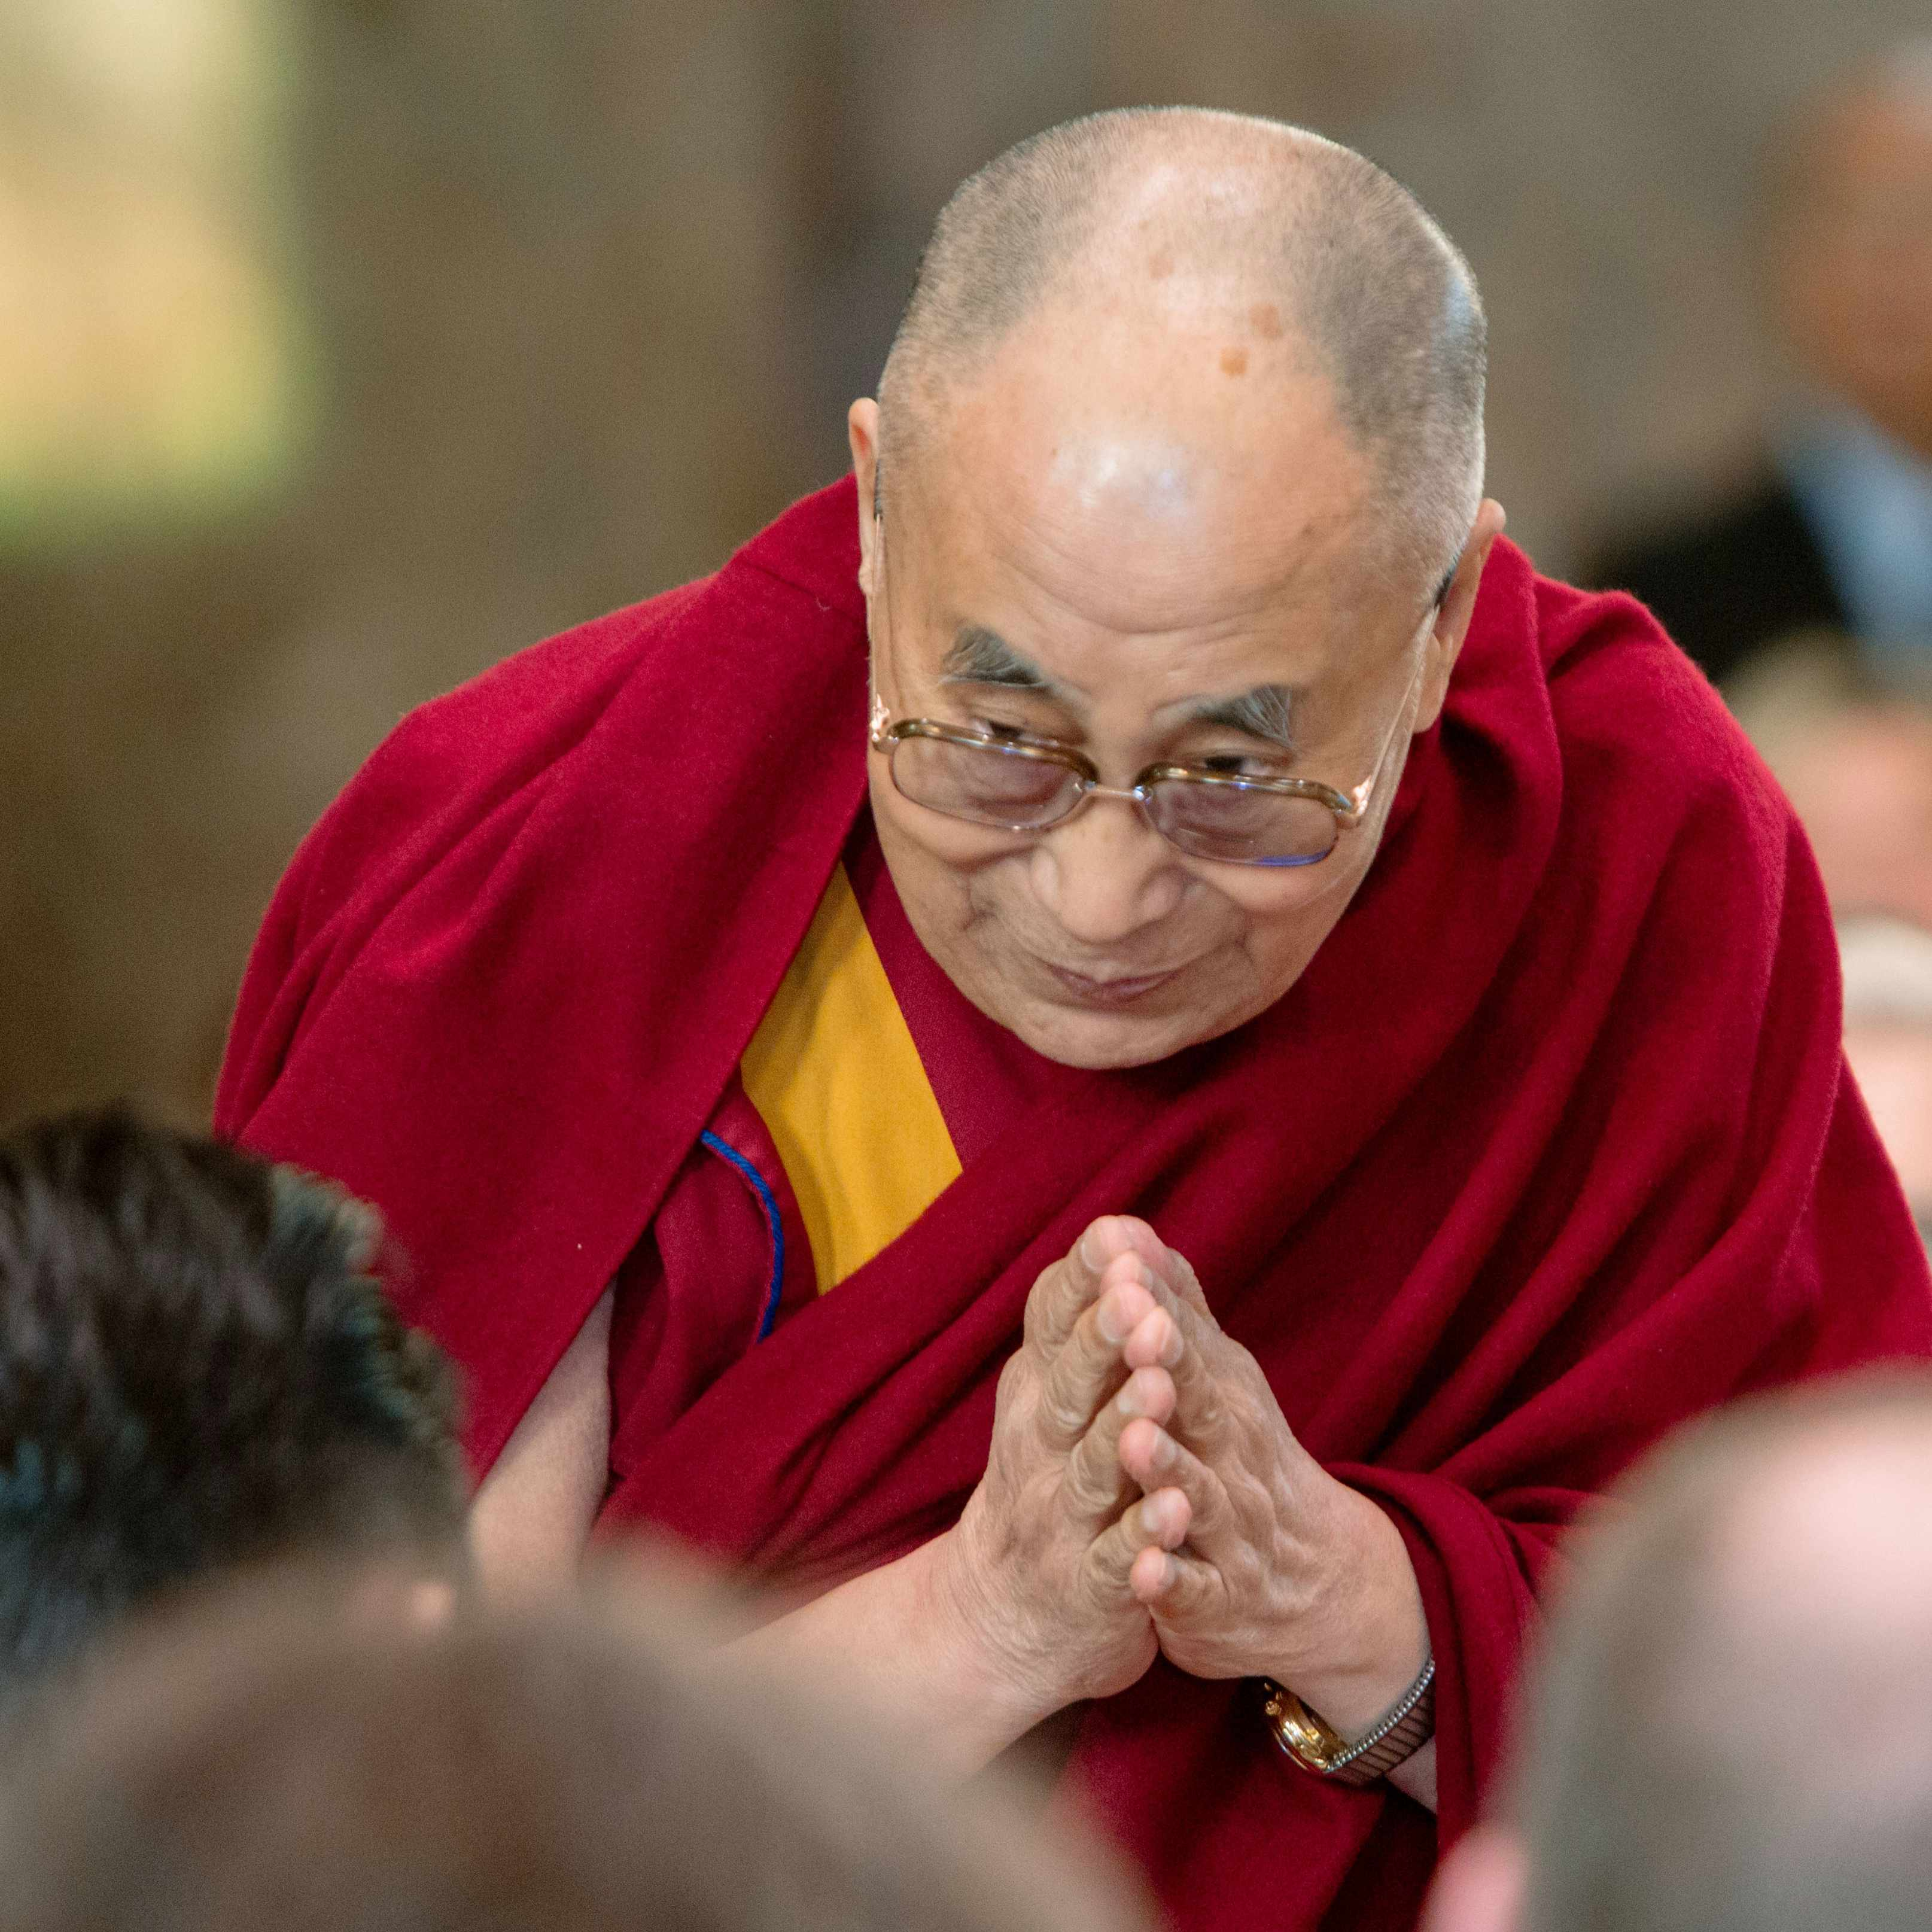 the Dalai Lama at Saint Marys Chapel